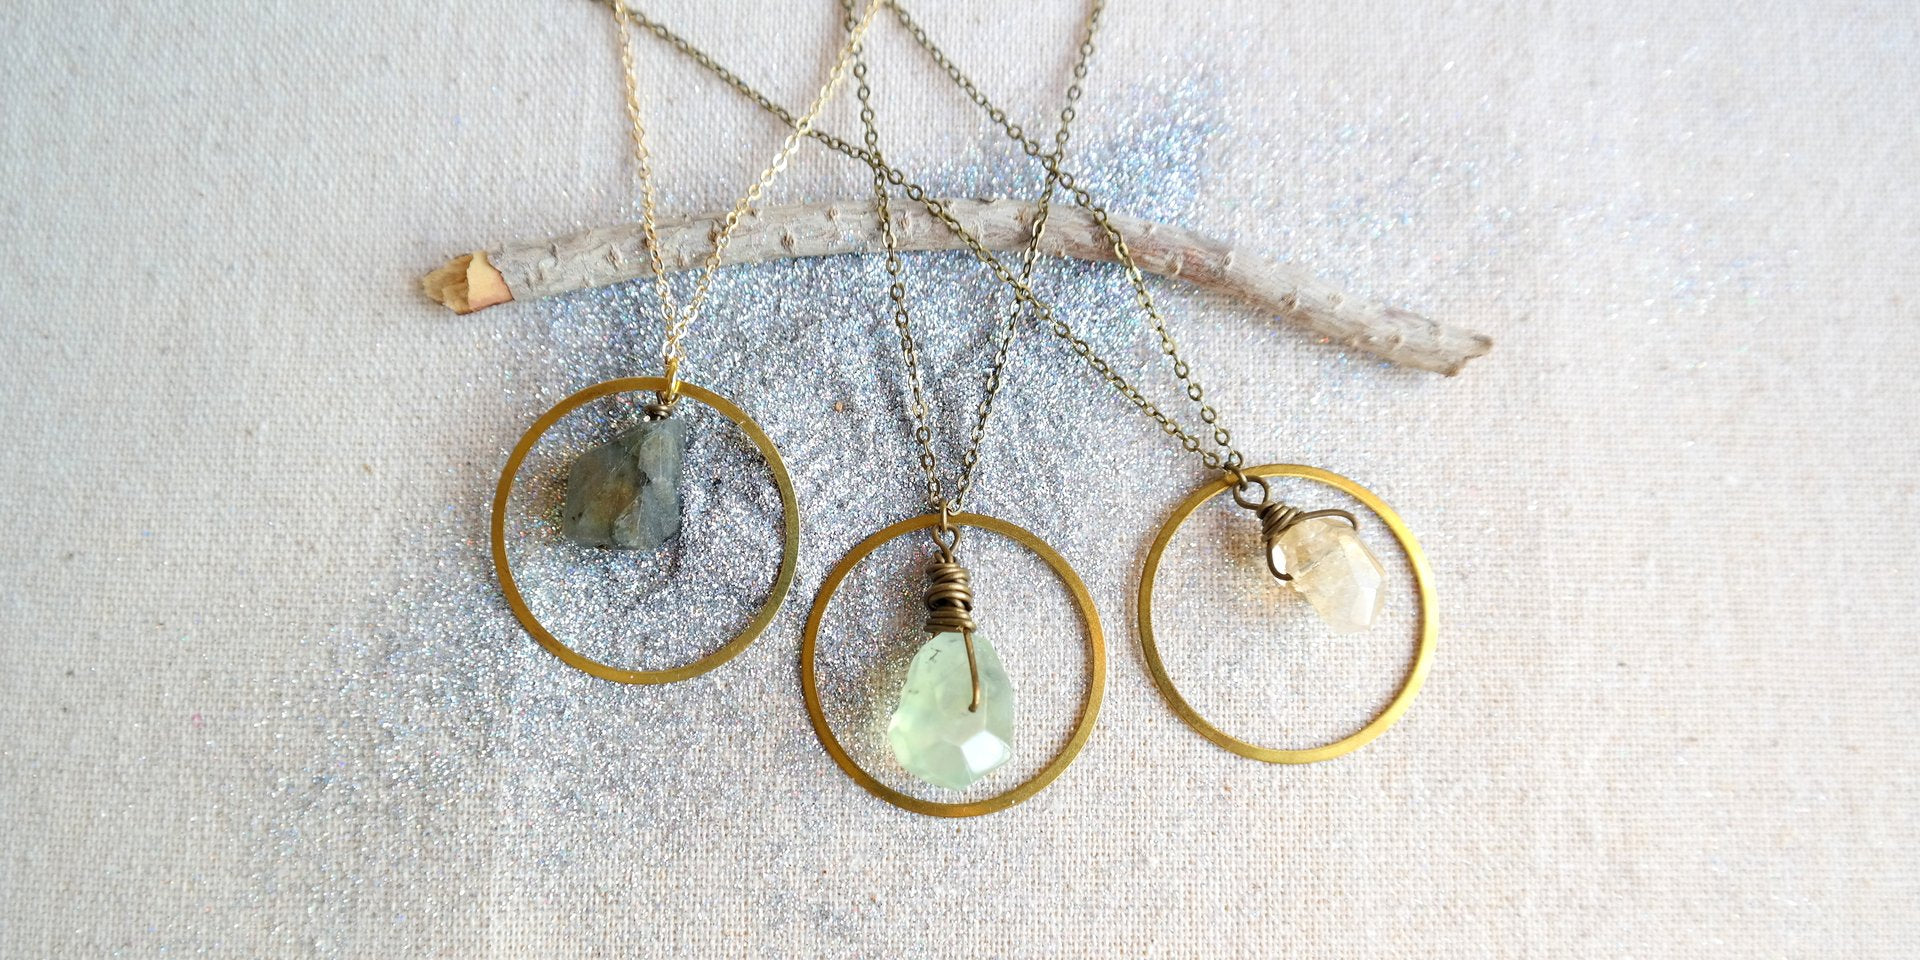 Gold Ring Necklaces with Crystals